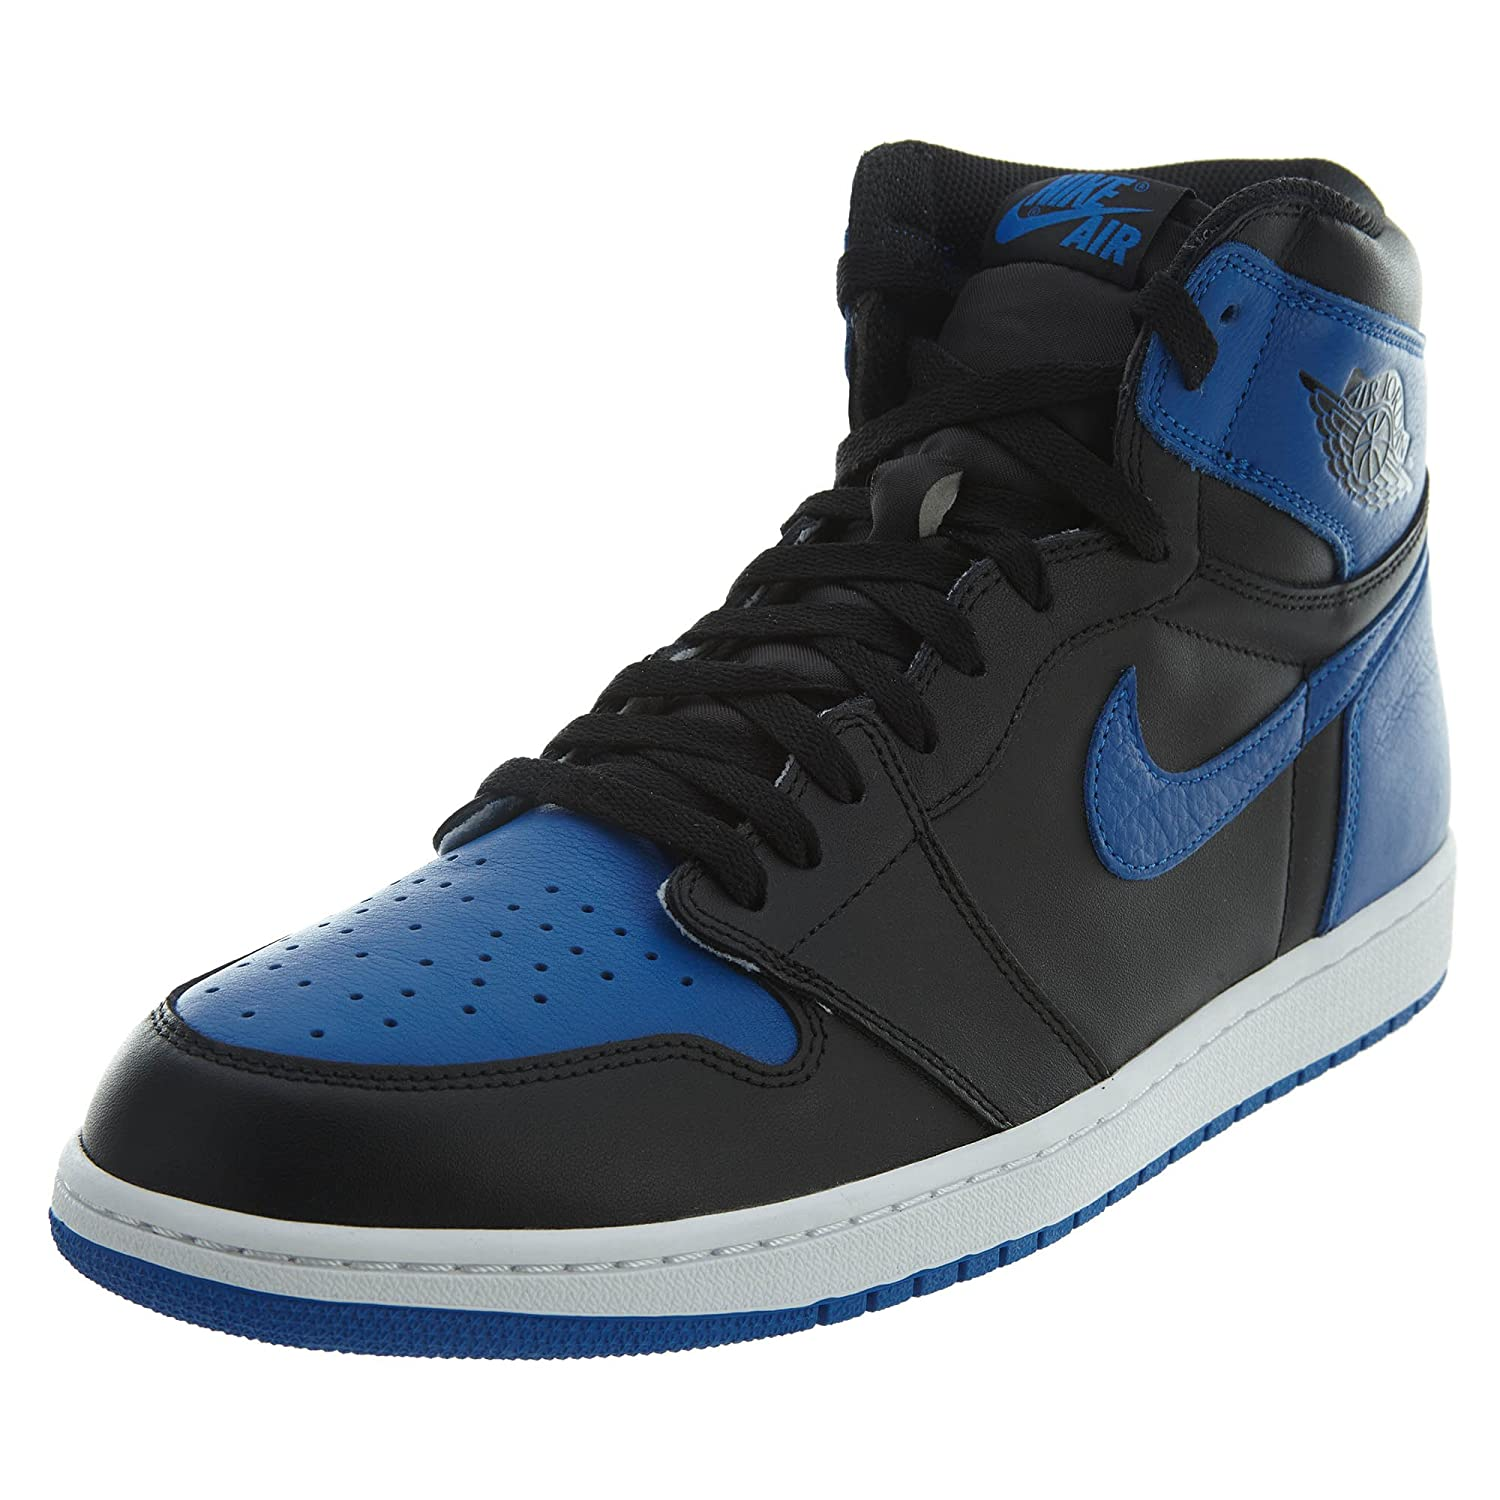 huge discount fd3b9 ed880 Amazon.com  Nike Mens Air Jordan AJ 1 High Top Shoe, Royal BlueBlackWhite,  9.5 D(M) US  Basketball